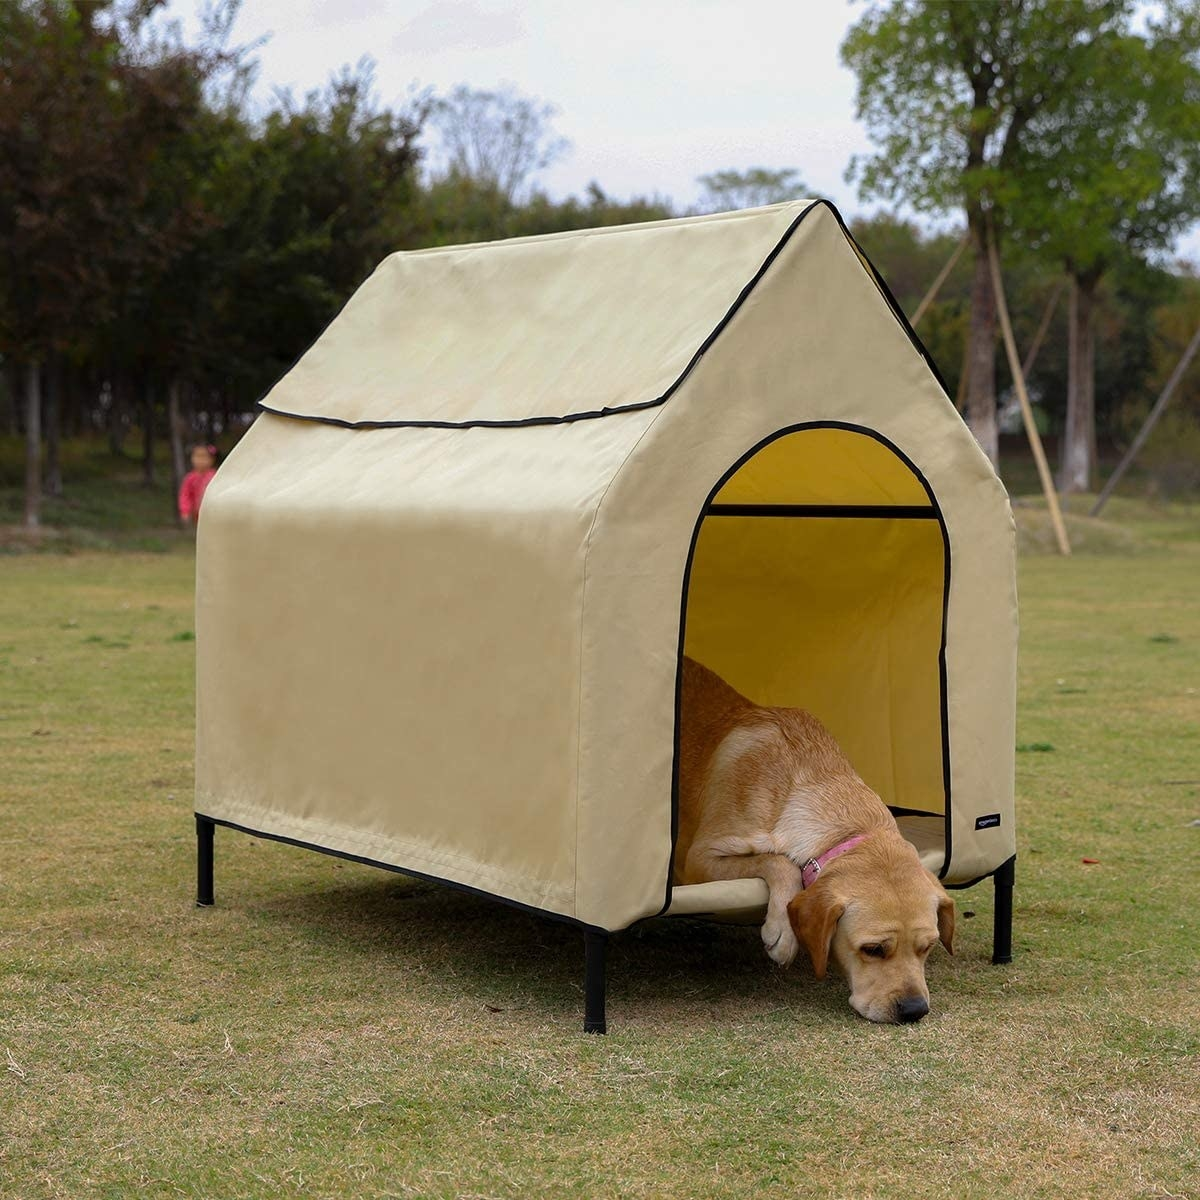 Dog inside the tan and black elevated pet house